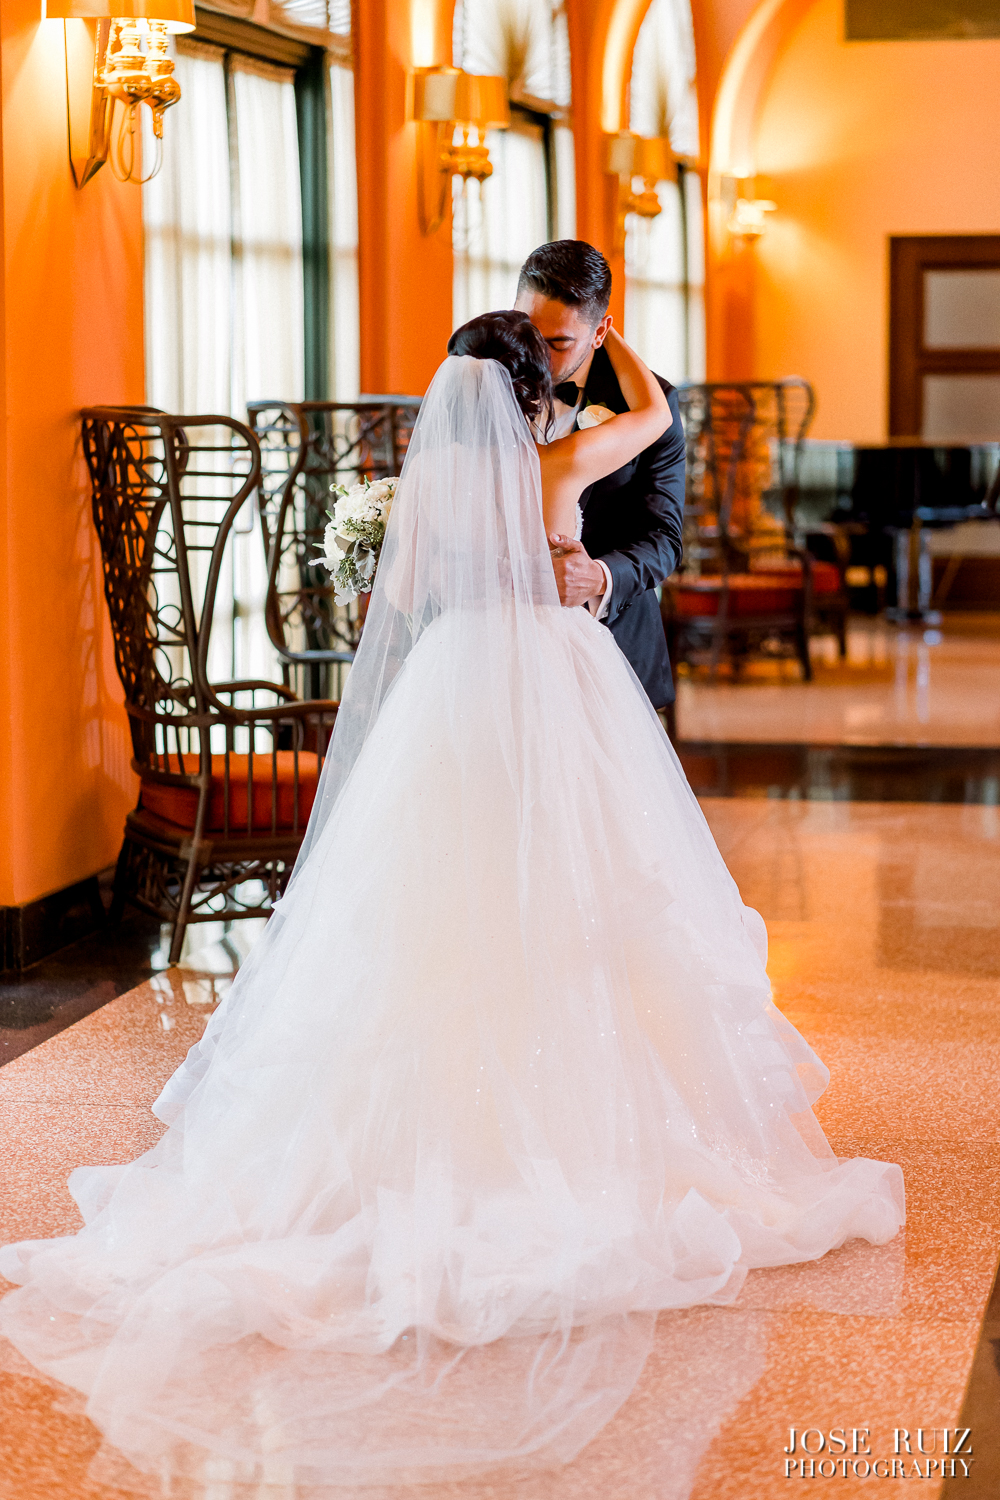 Jose Ruiz Photography- Madalyn & Joel-0032.jpg